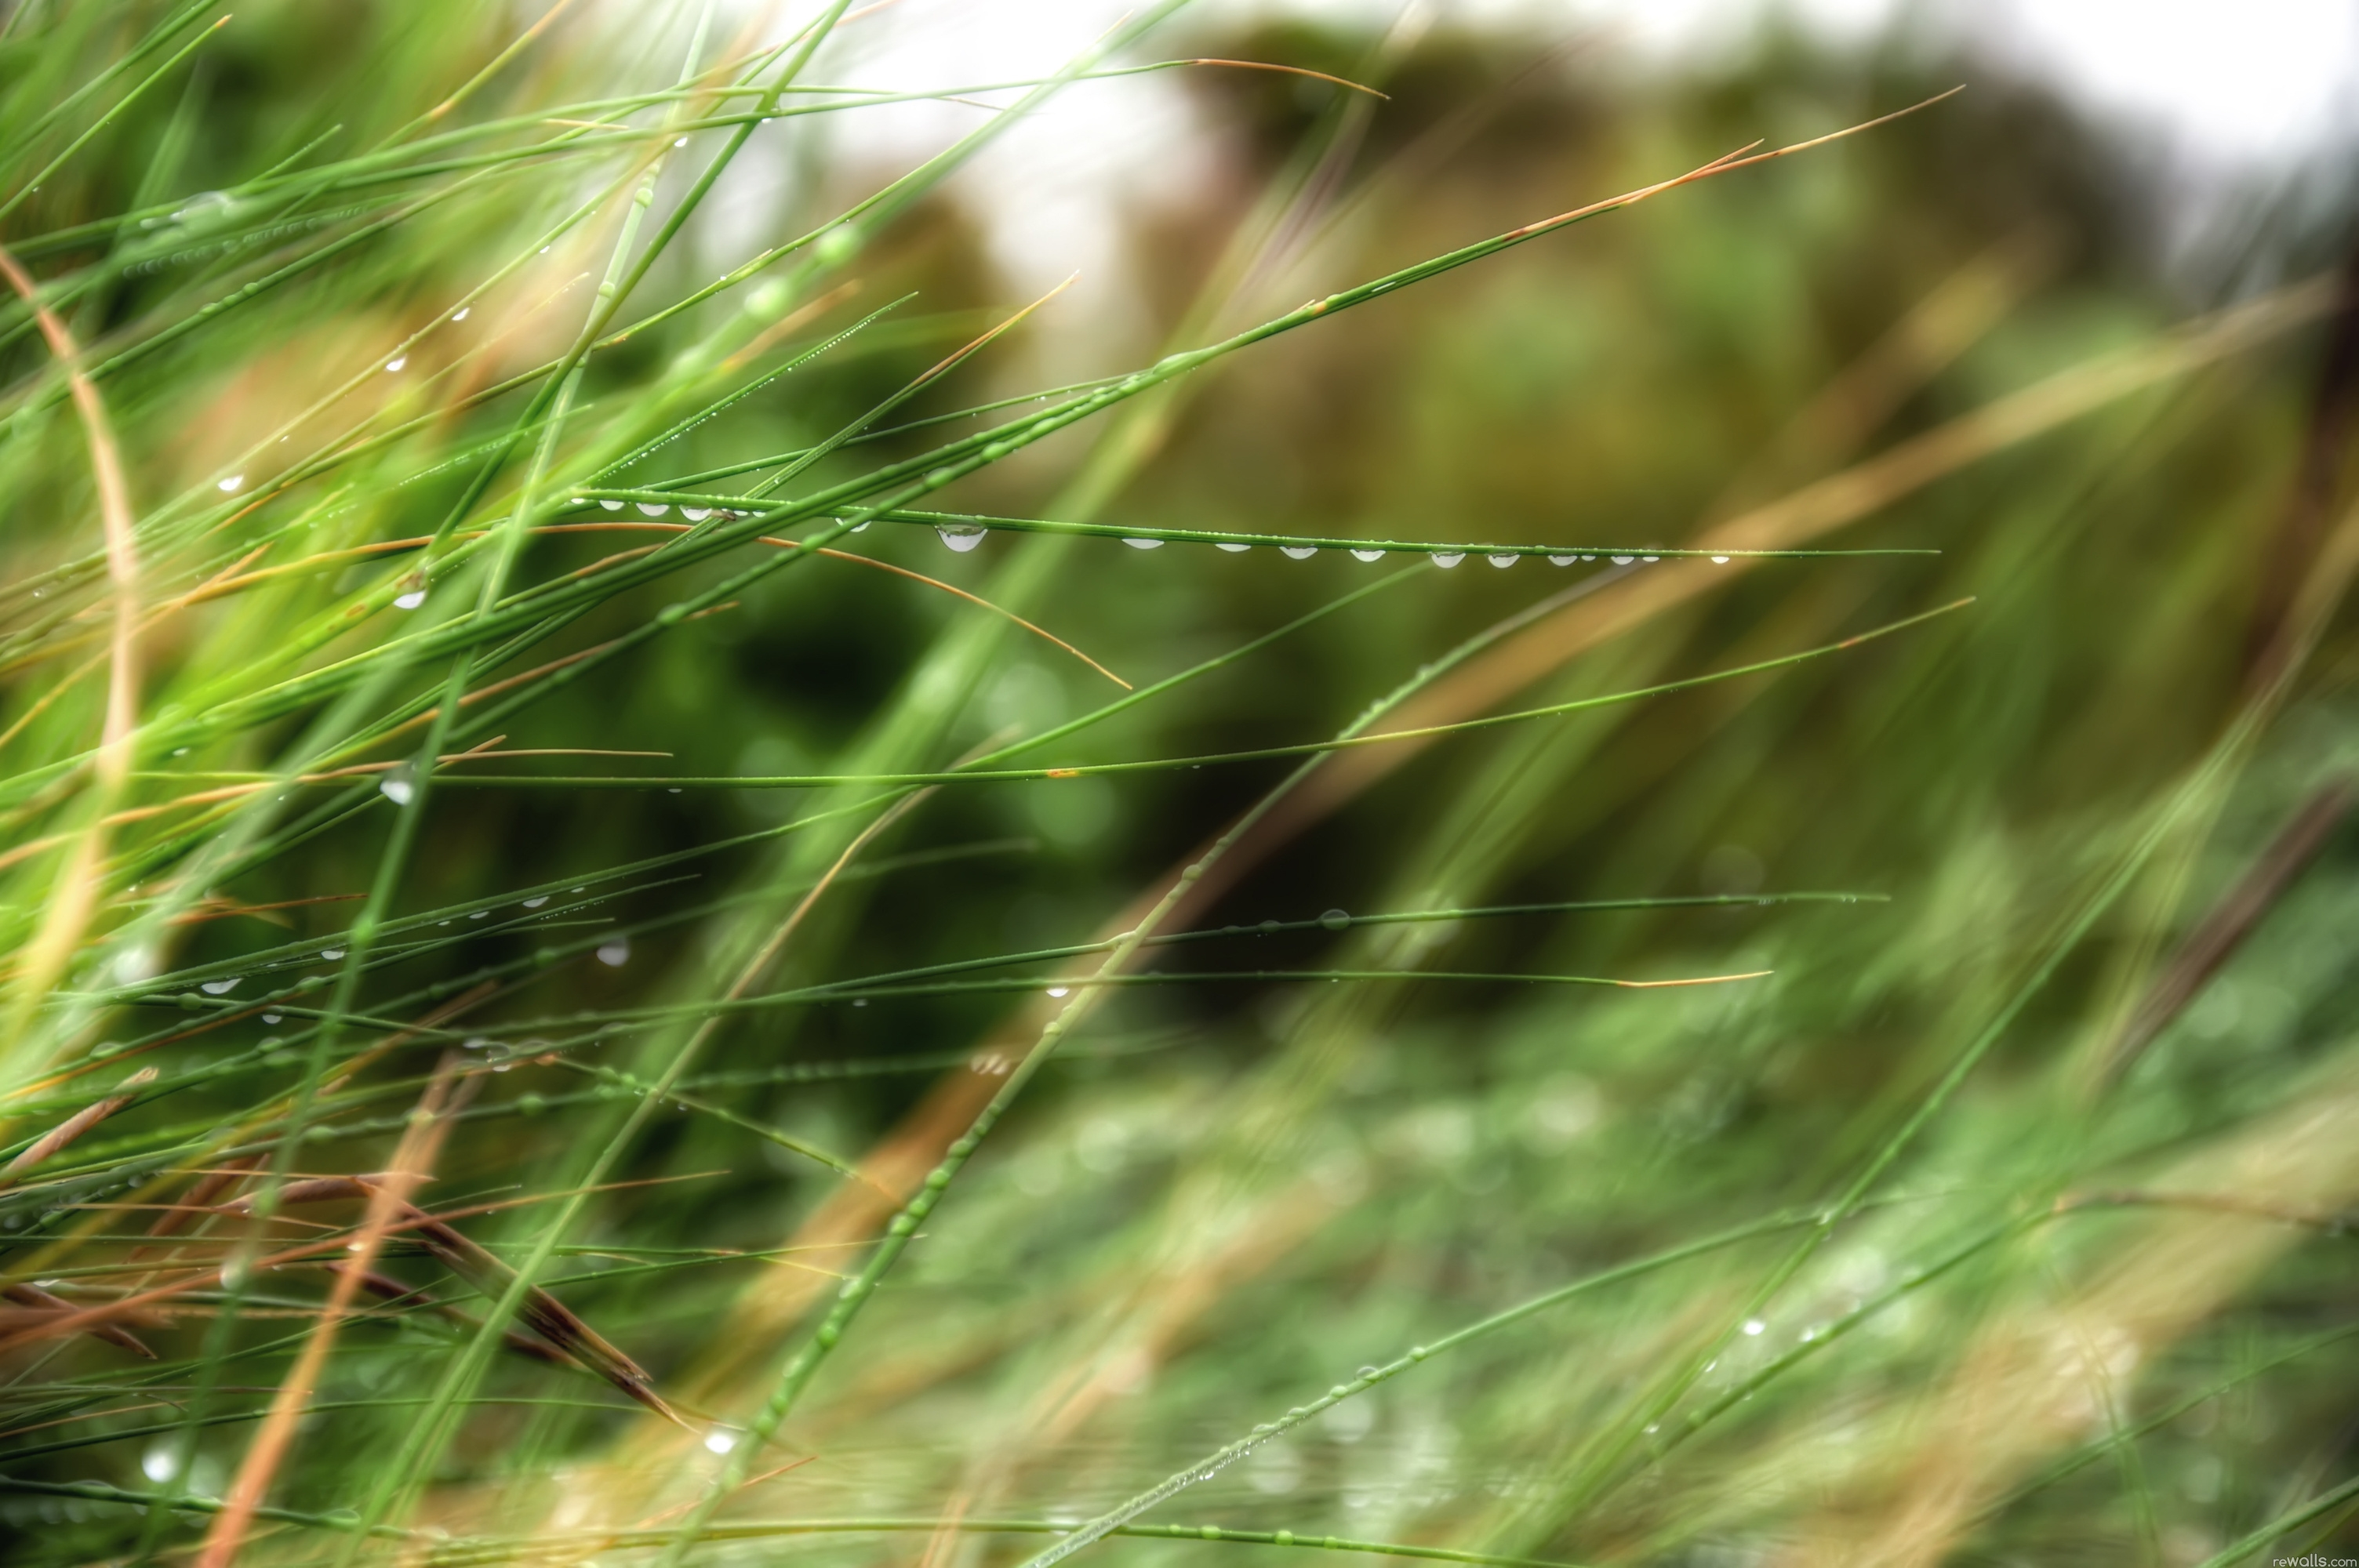 127015 download wallpaper Macro, Drops, Grass, Dew, Summer, Rain screensavers and pictures for free